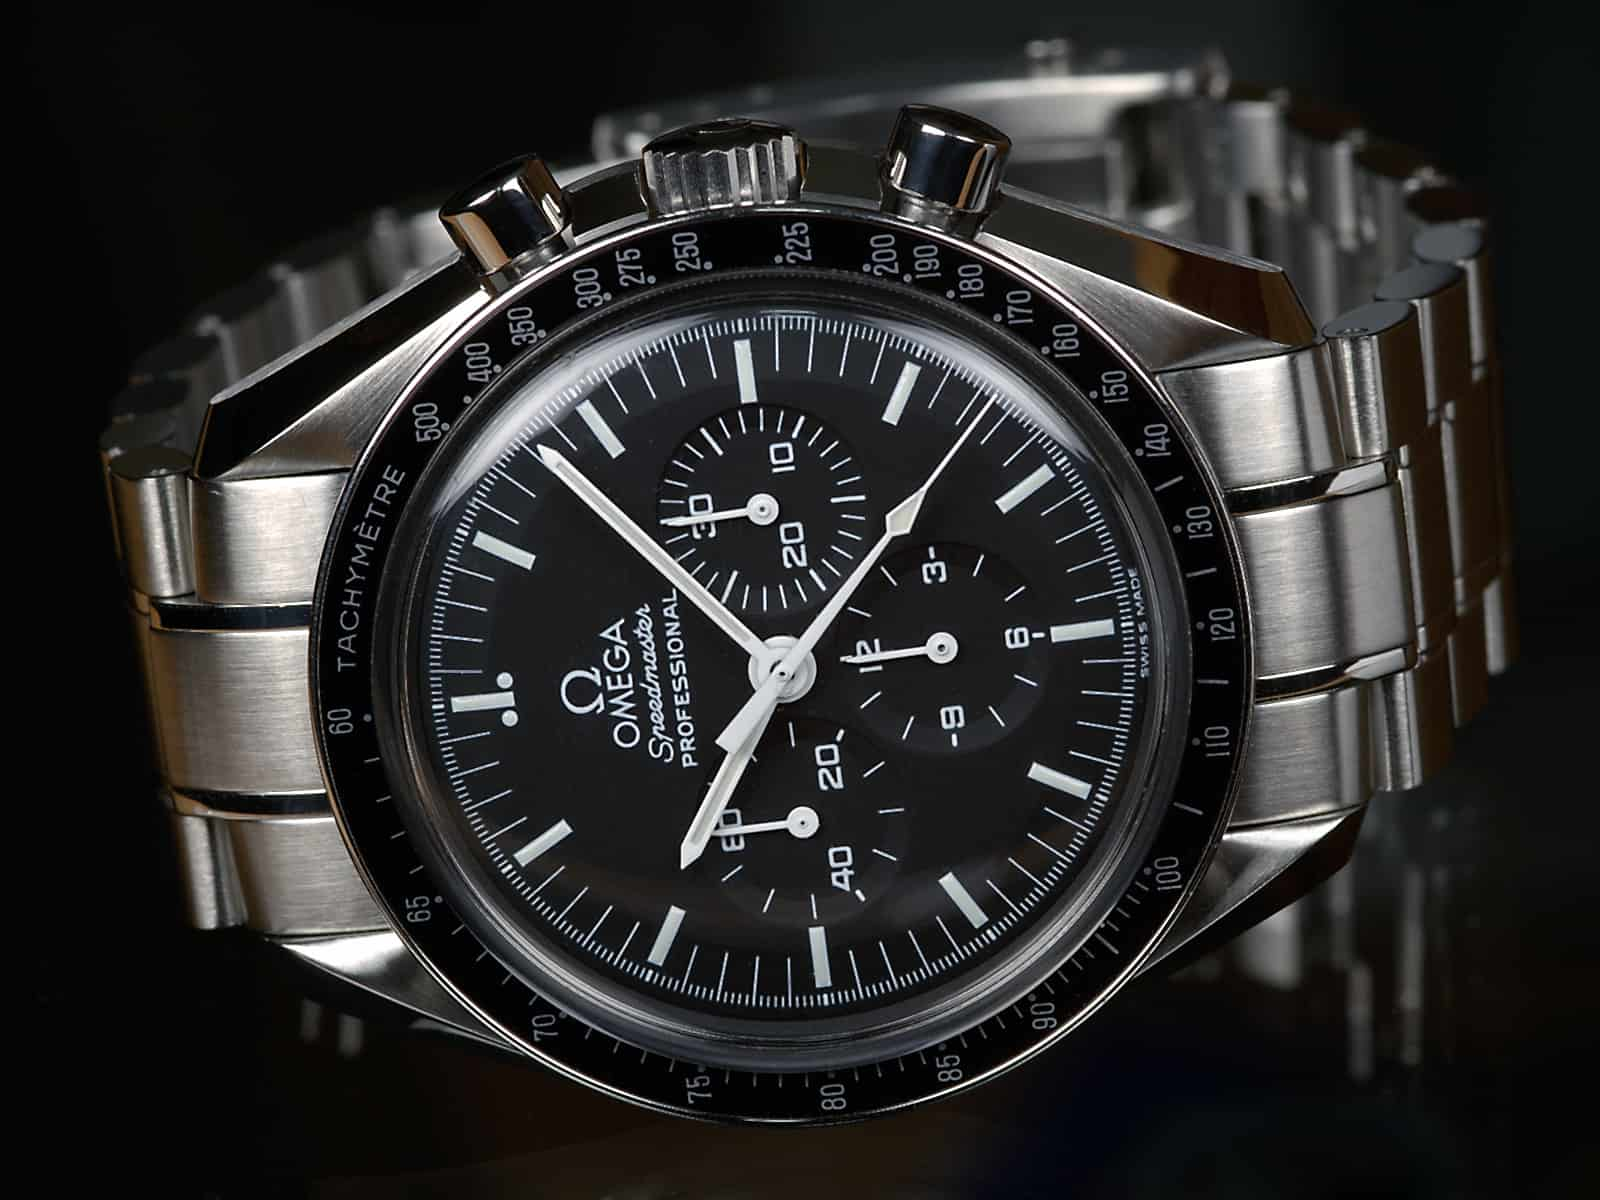 Omega Speedmaster Professional has seen few changes in 60 years – pictured is the current model 311.30.42.30.01.005. Image: Wikimedia Commons